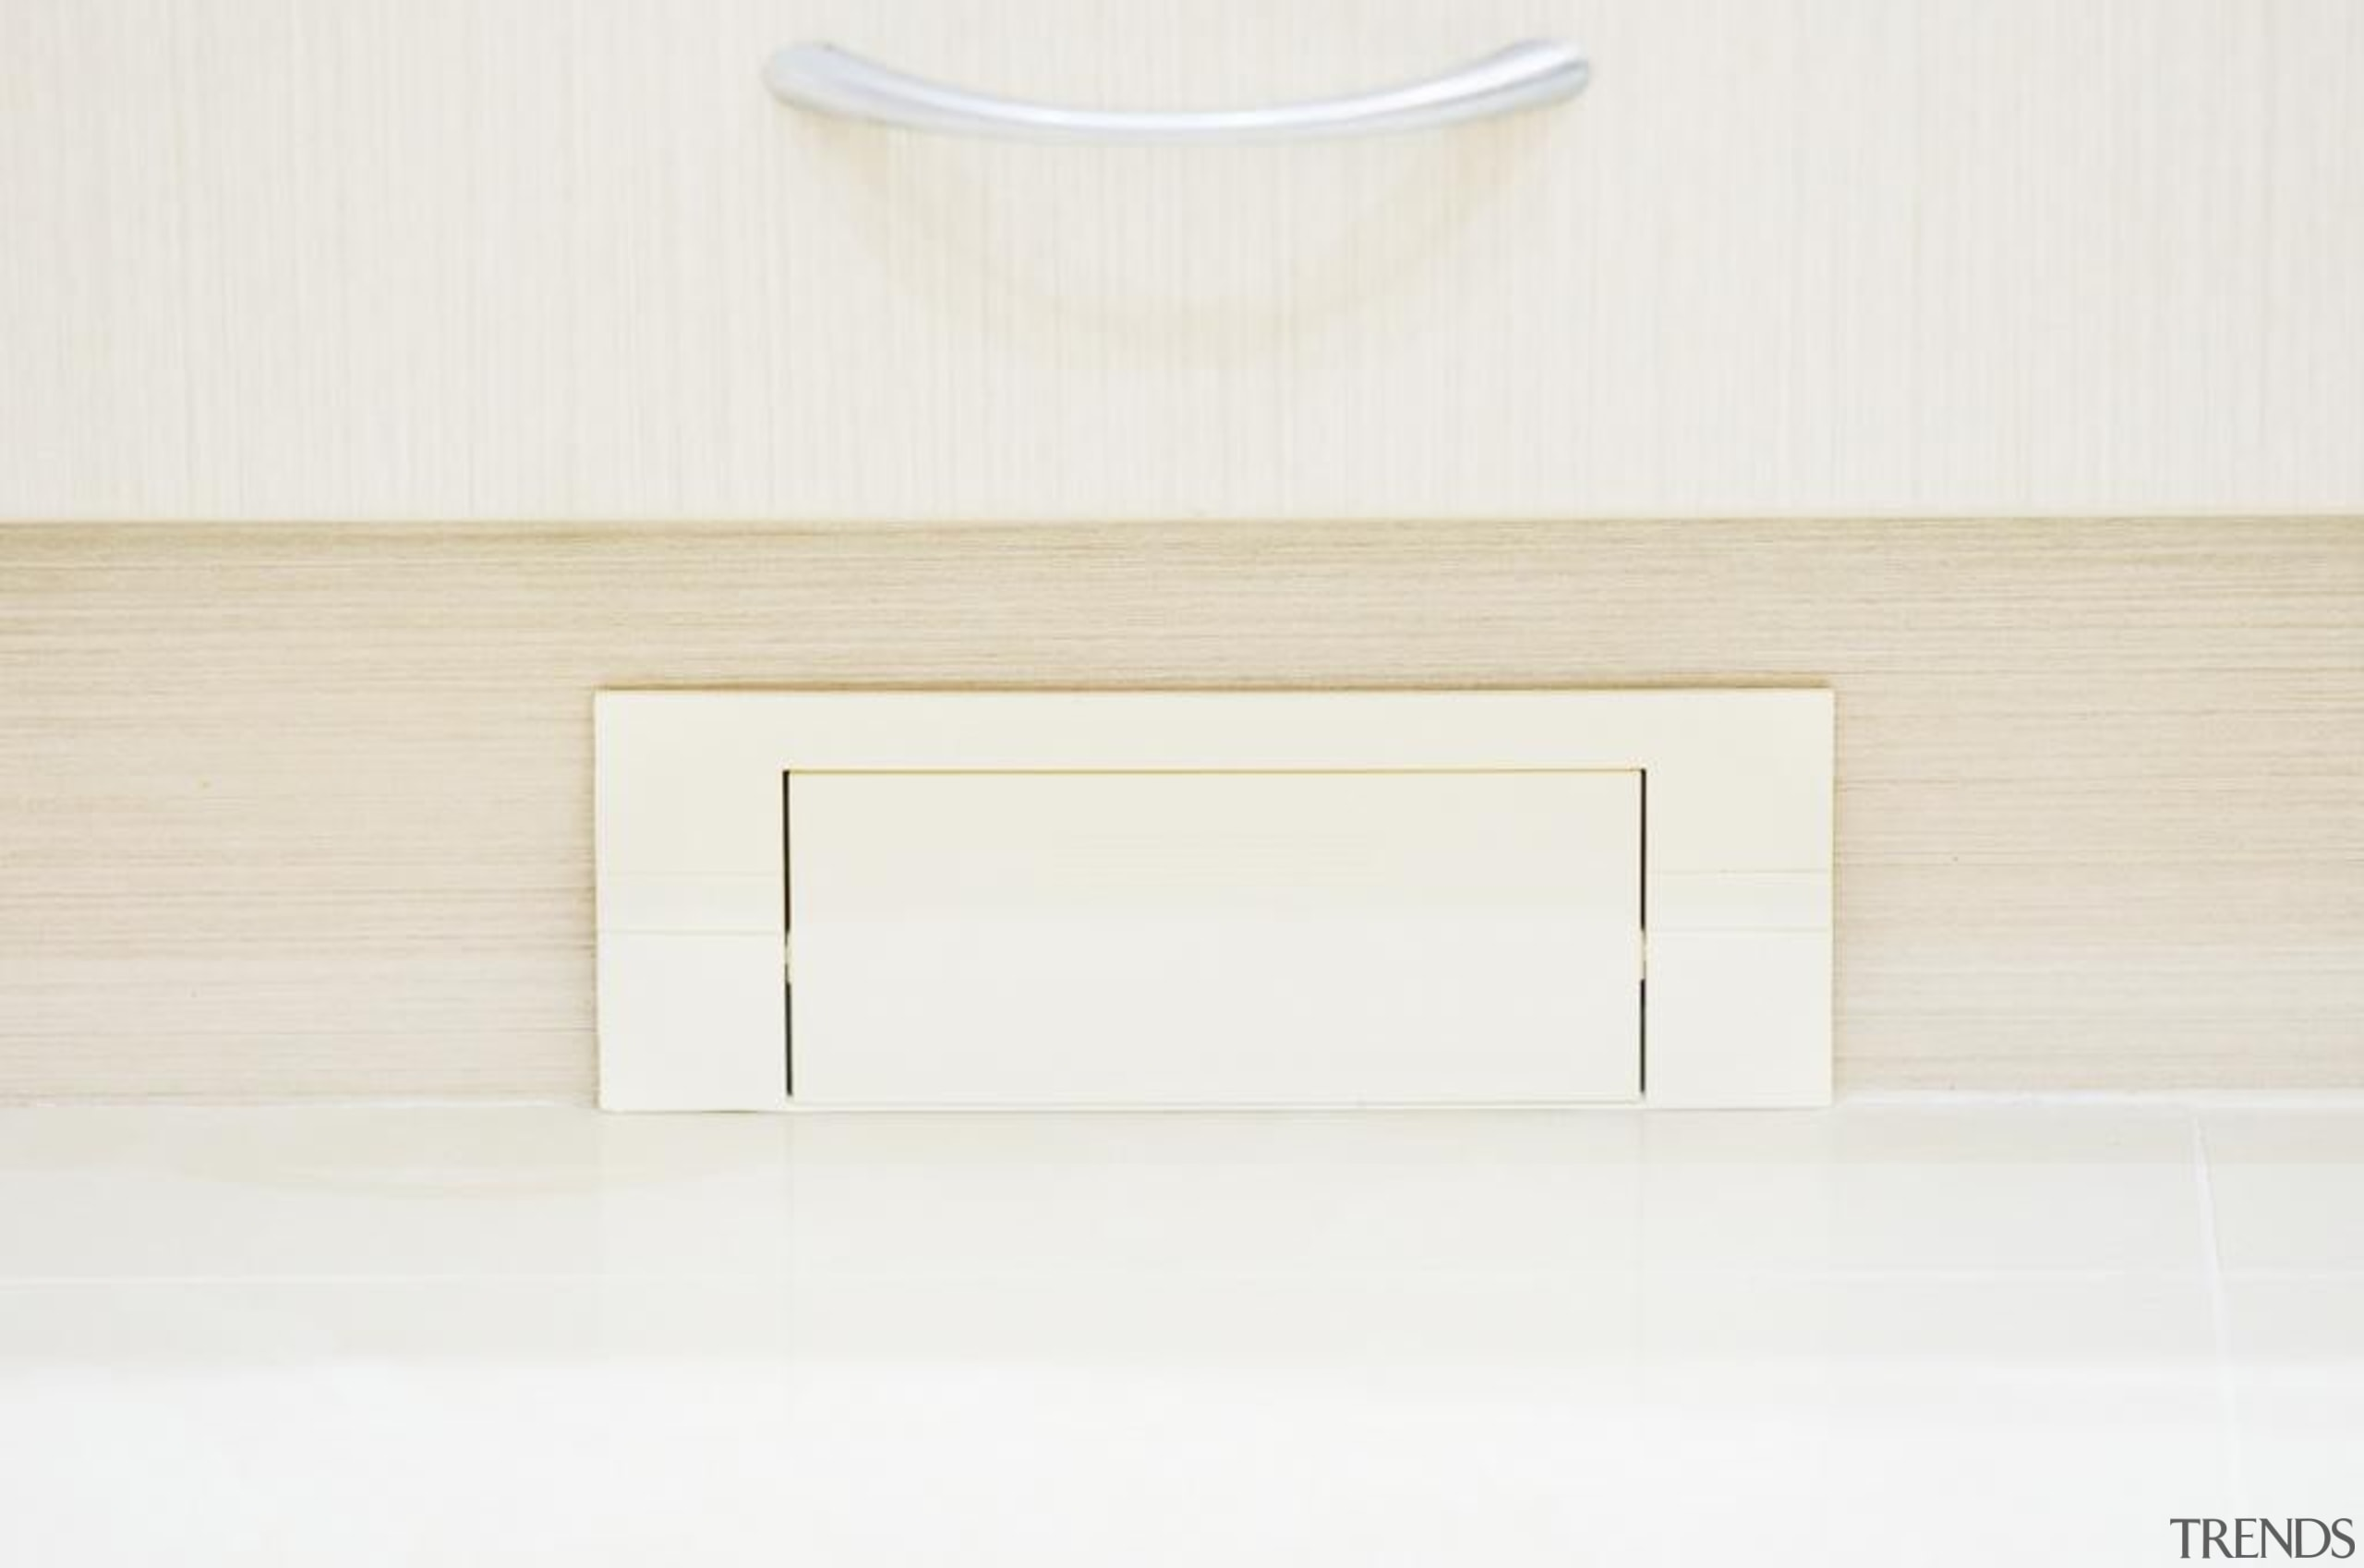 Clean up dust, dirt and crumbs quickly and furniture, shelf, table, white